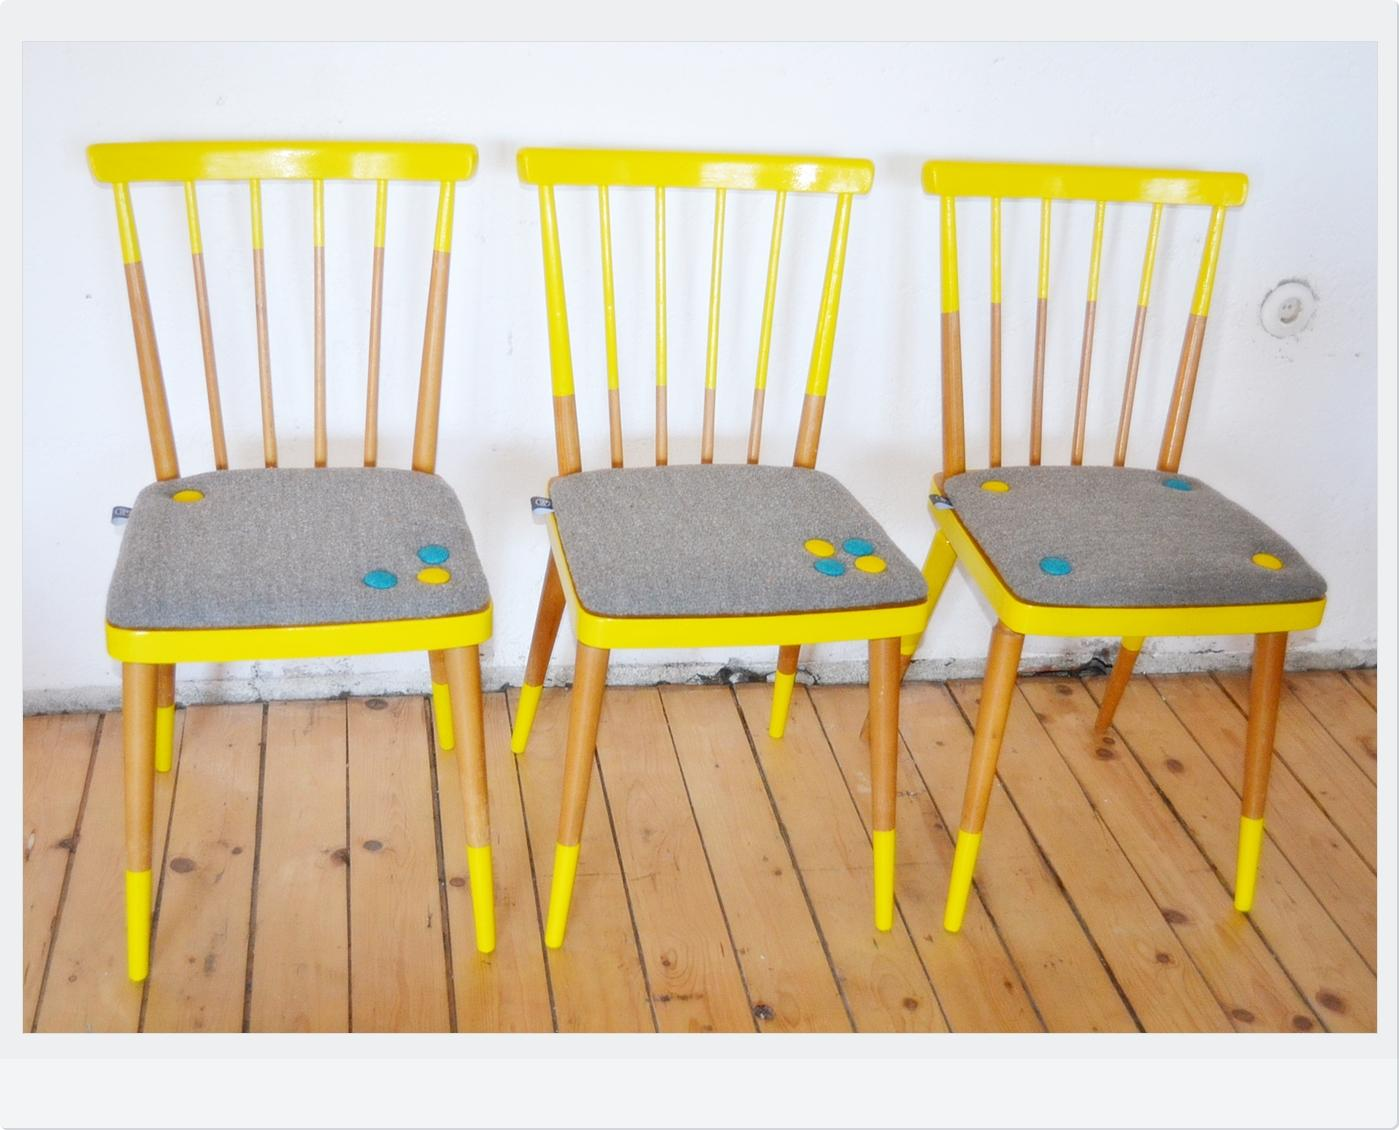 Vintage Stuhl Upcycling Yellow #stuhl #upcycling ©Raummission